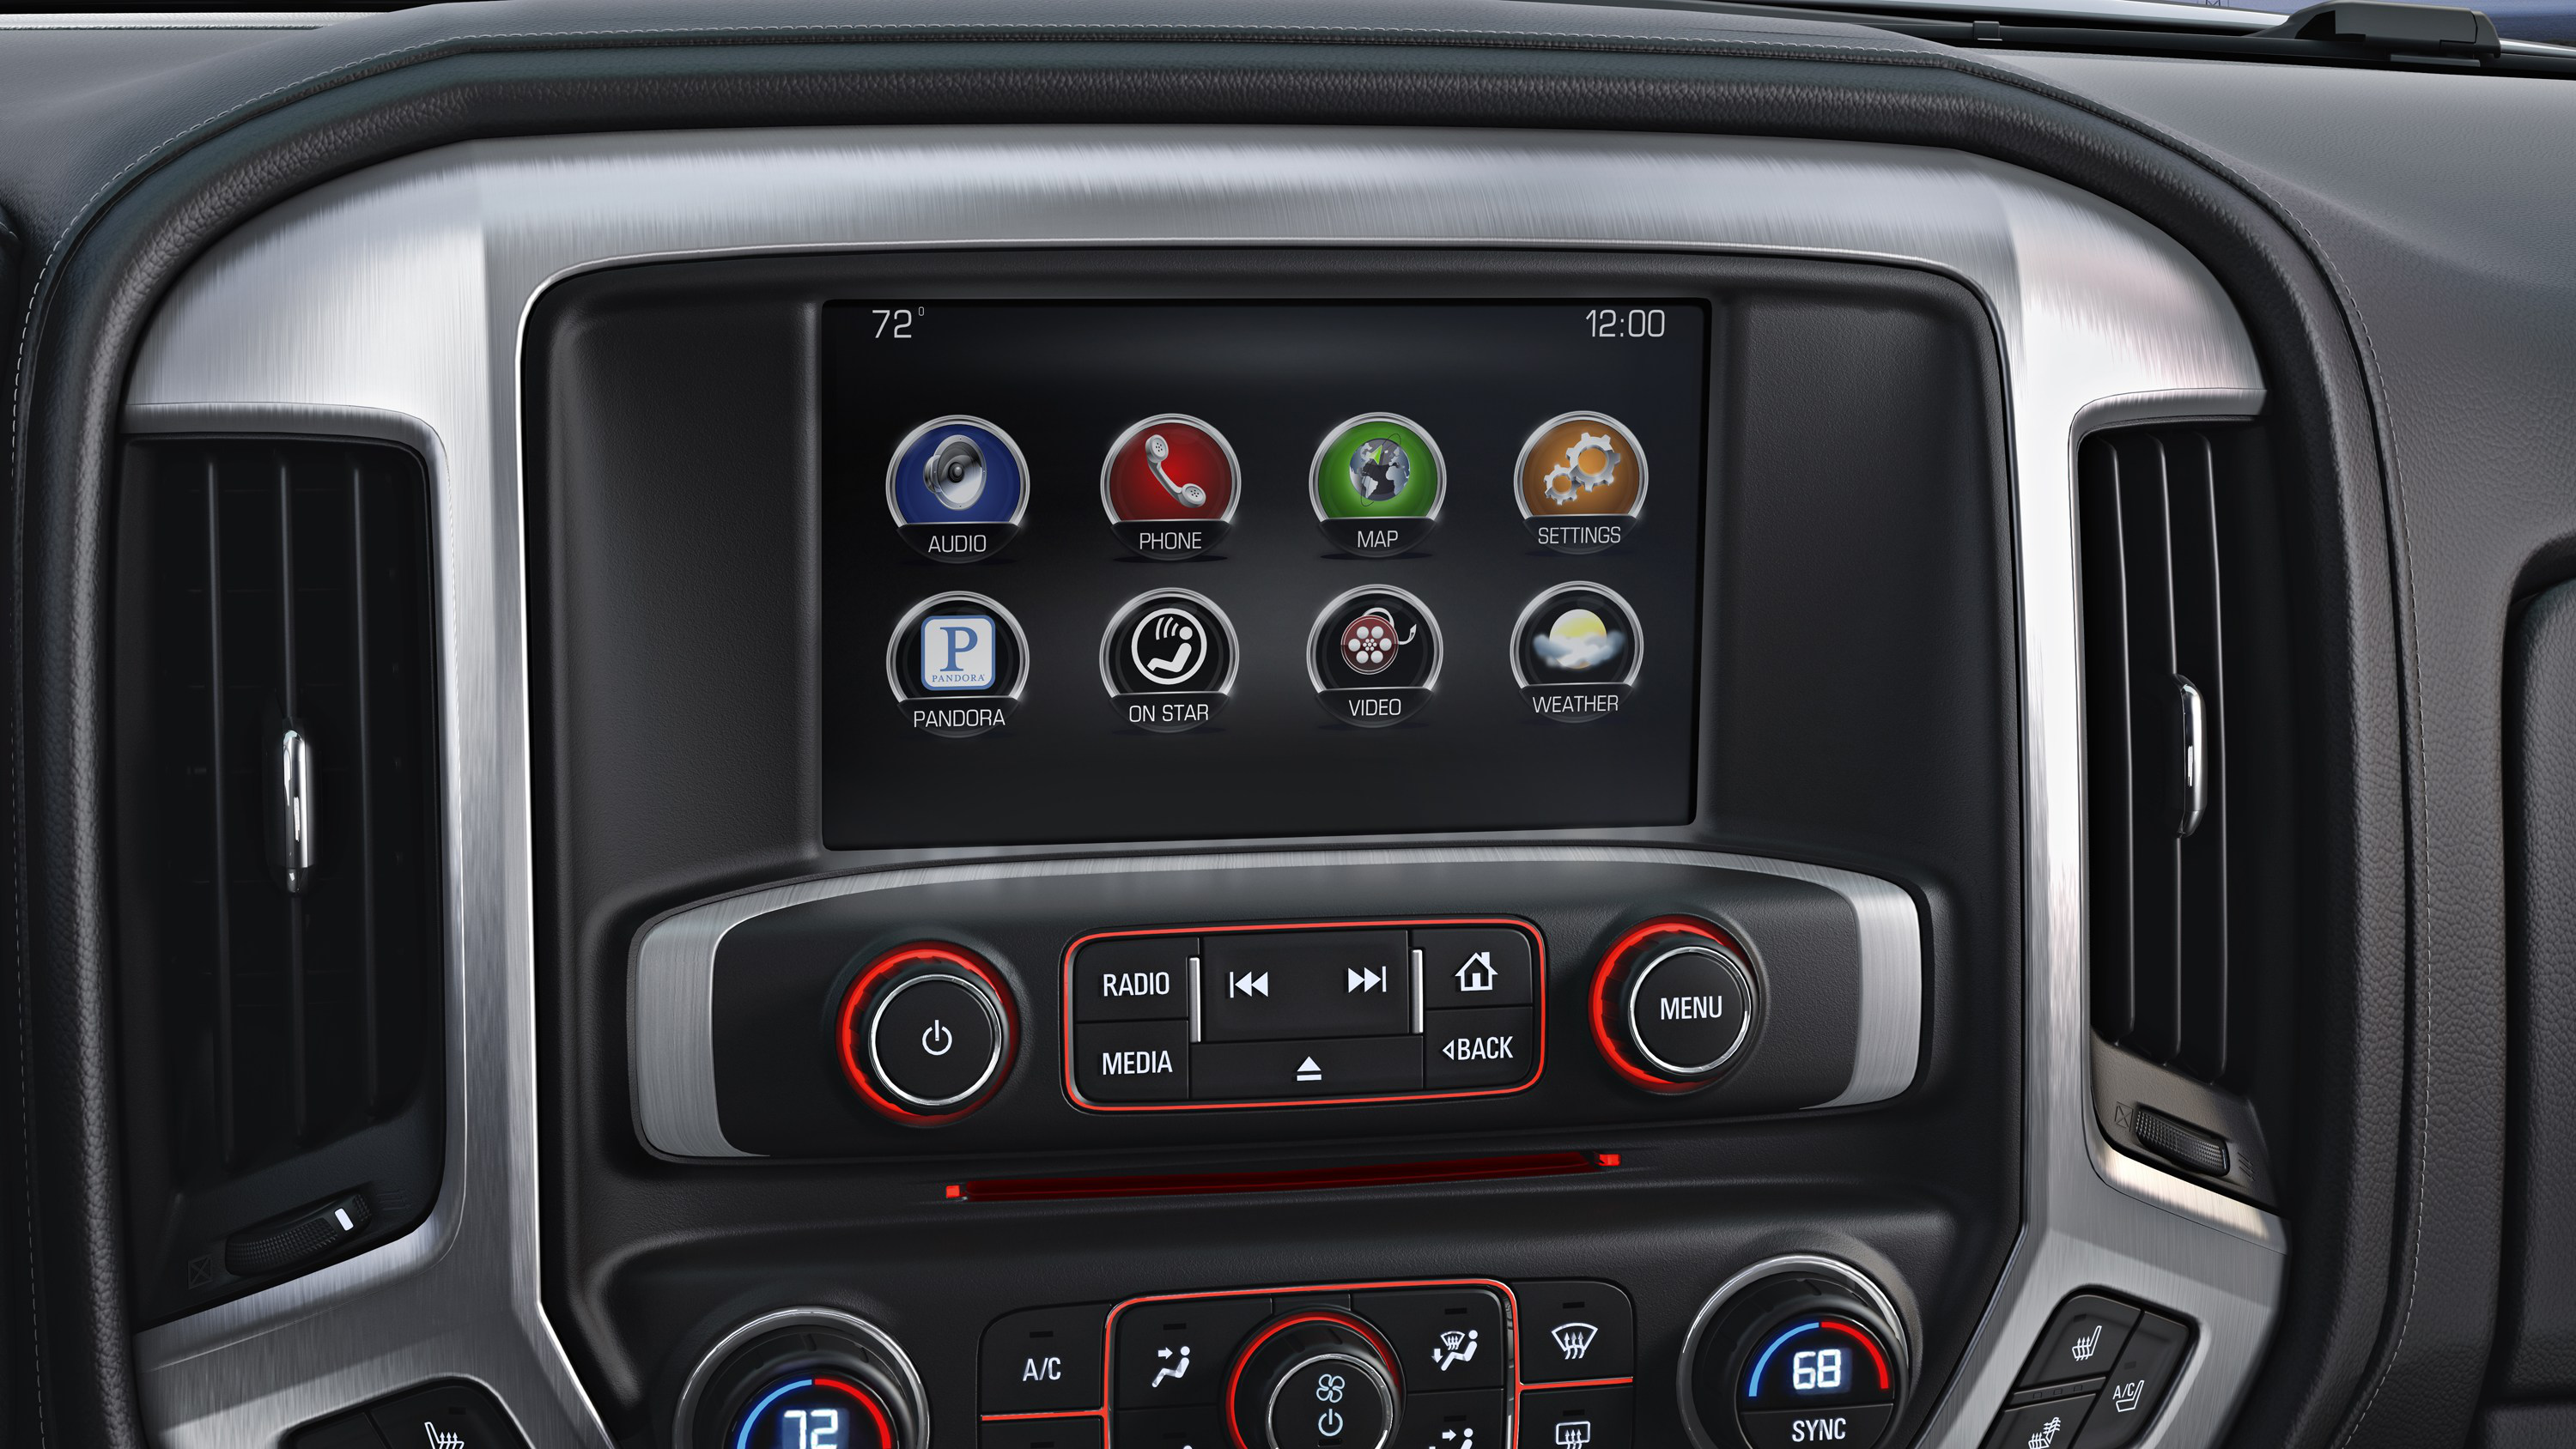 Delightful The All New Interior On The 2014 GMC Sierra SLT Features A 8u2033 Color Touch  Screen Radio With Intellilink. The GMC Sierra Also Features Real Chrome  Trim ...